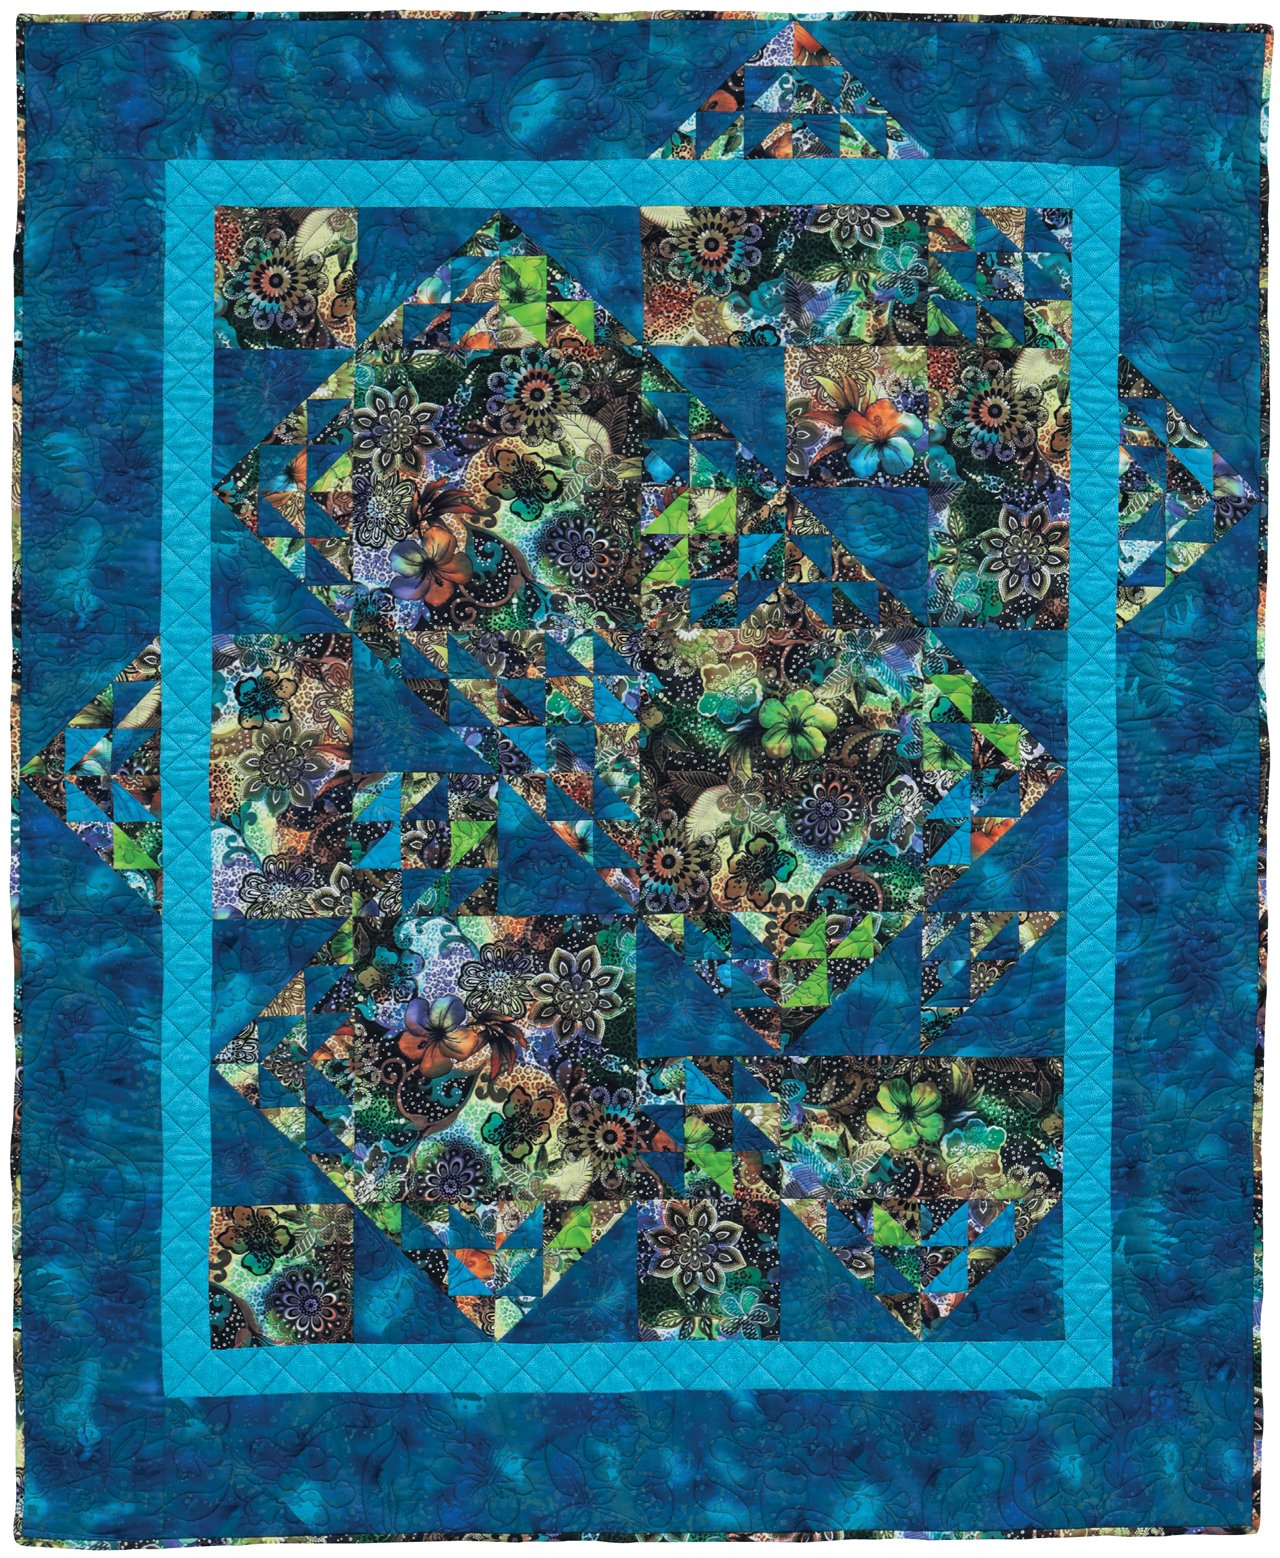 Image of: Printed Patchwork Quilt Patterns